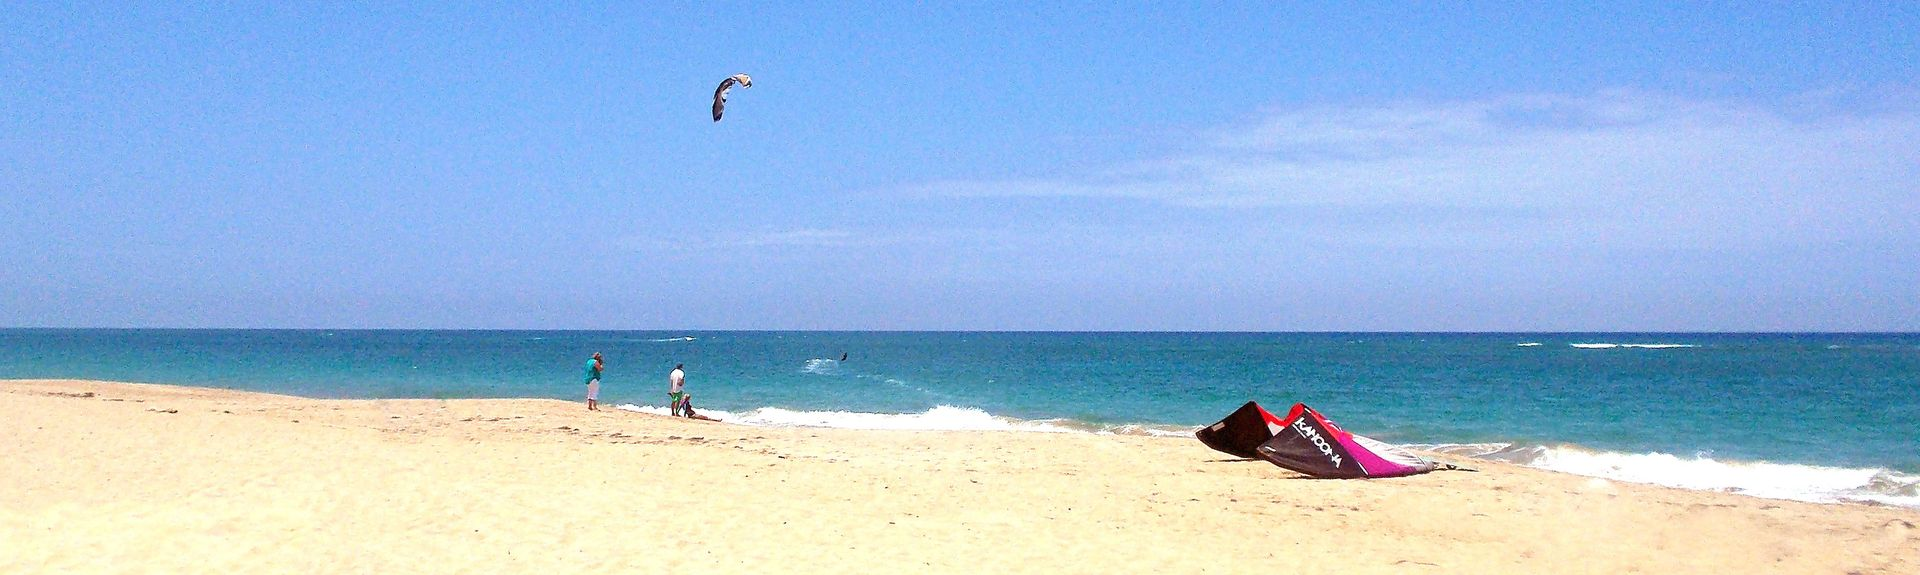 Kite Beach Hotel, Cabarete, Dominican Republic